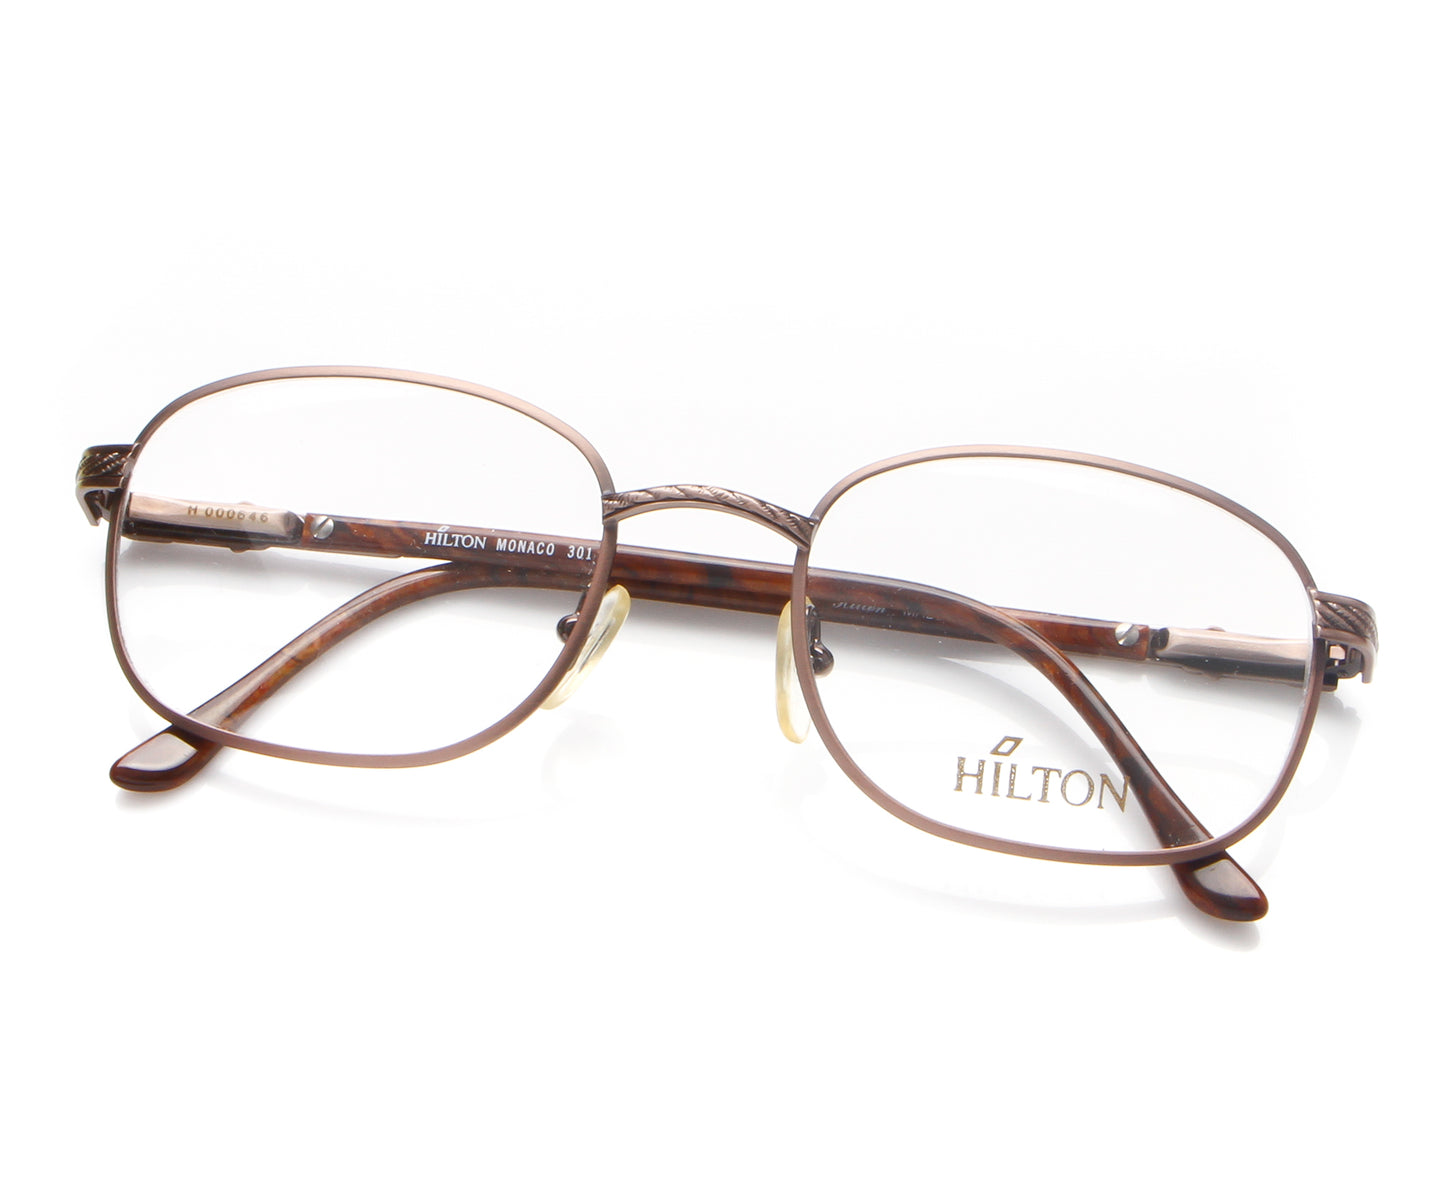 Vintage Hilton Monaco 301 4 Thumbnail, Hilton , glasses frames, eyeglasses online, eyeglass frames, mens glasses, womens glasses, buy glasses online, designer eyeglasses, vintage sunglasses, retro sunglasses, vintage glasses, sunglass, eyeglass, glasses, lens, vintage frames company, vf